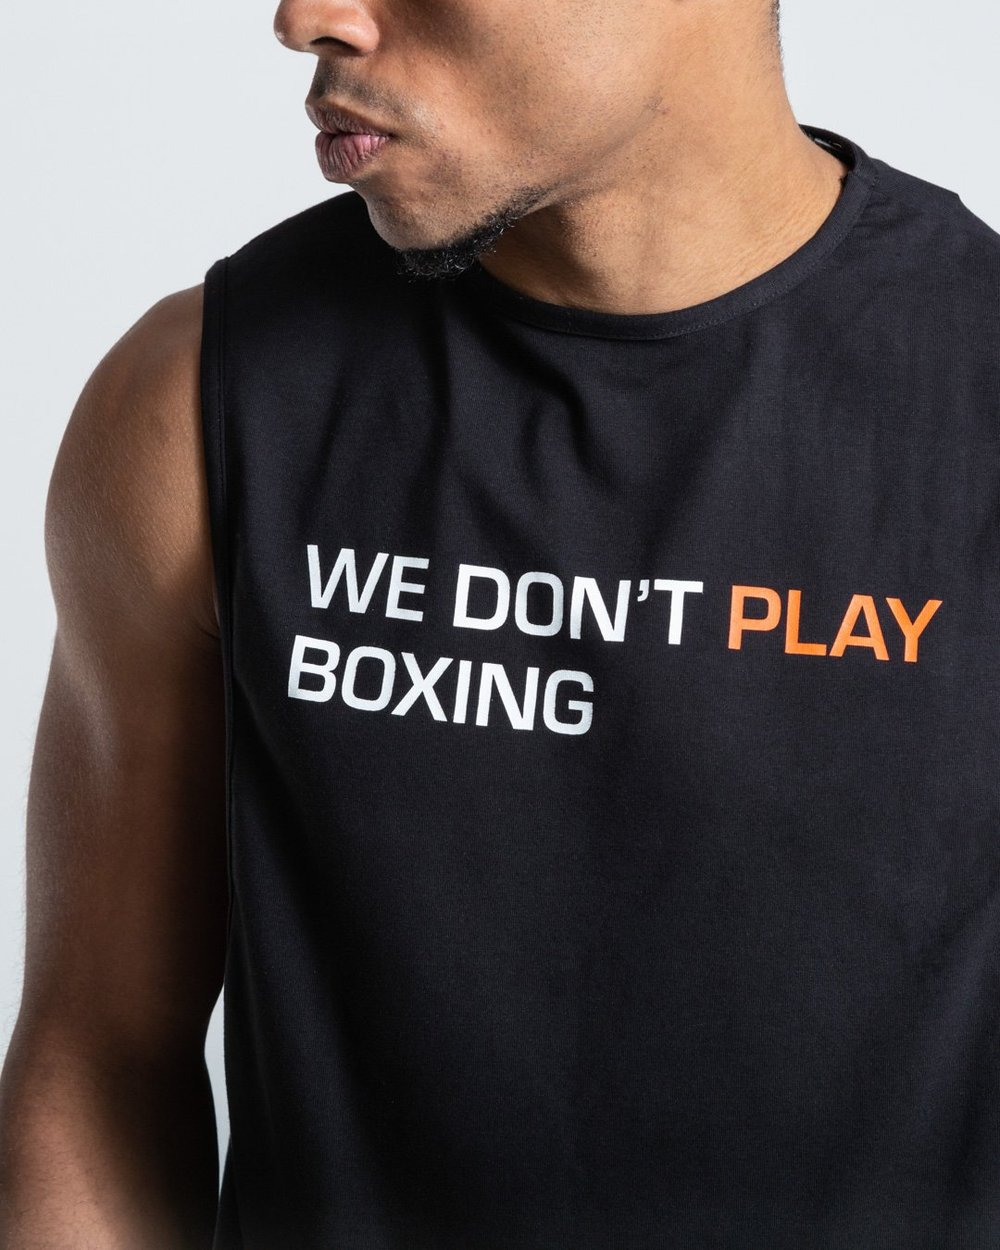 【Treasure Zone】BOXRAW WE DON'T PLAY BOXING TANK 拳击背心